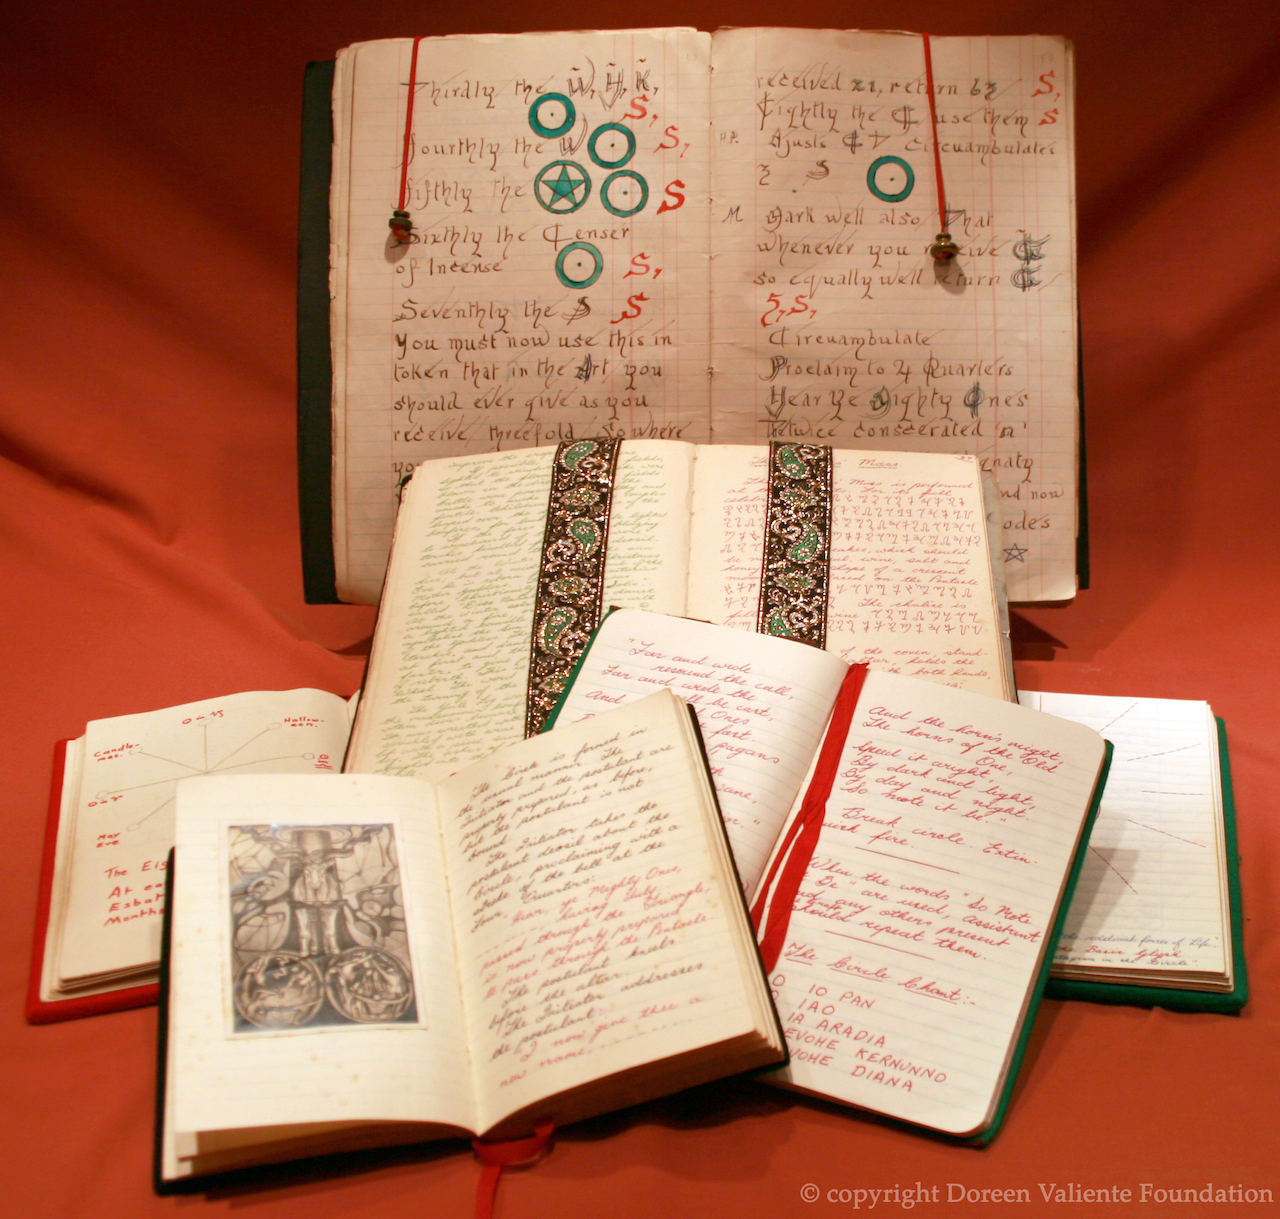 Ritual books owned by Doreen Valiente, including the 'Book of Shadows' at the back (courtesy Doreen Valiente Foundation)